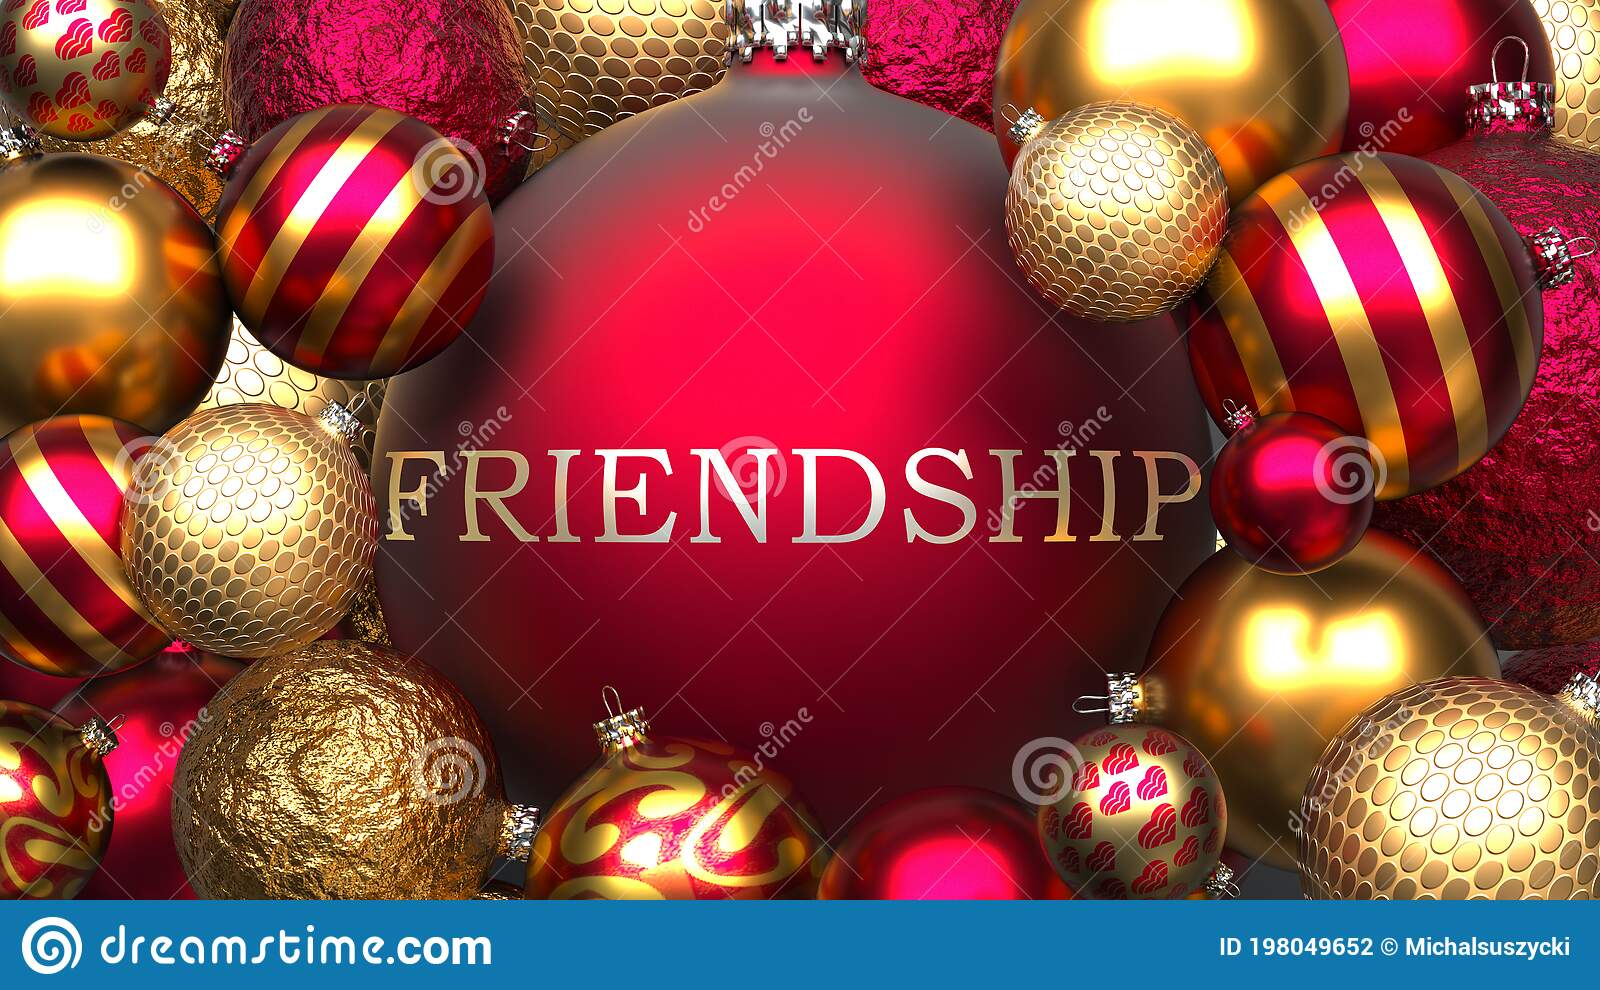 Friendship and Xmas, Pictured As Red and Golden, Luxury Christmas ...